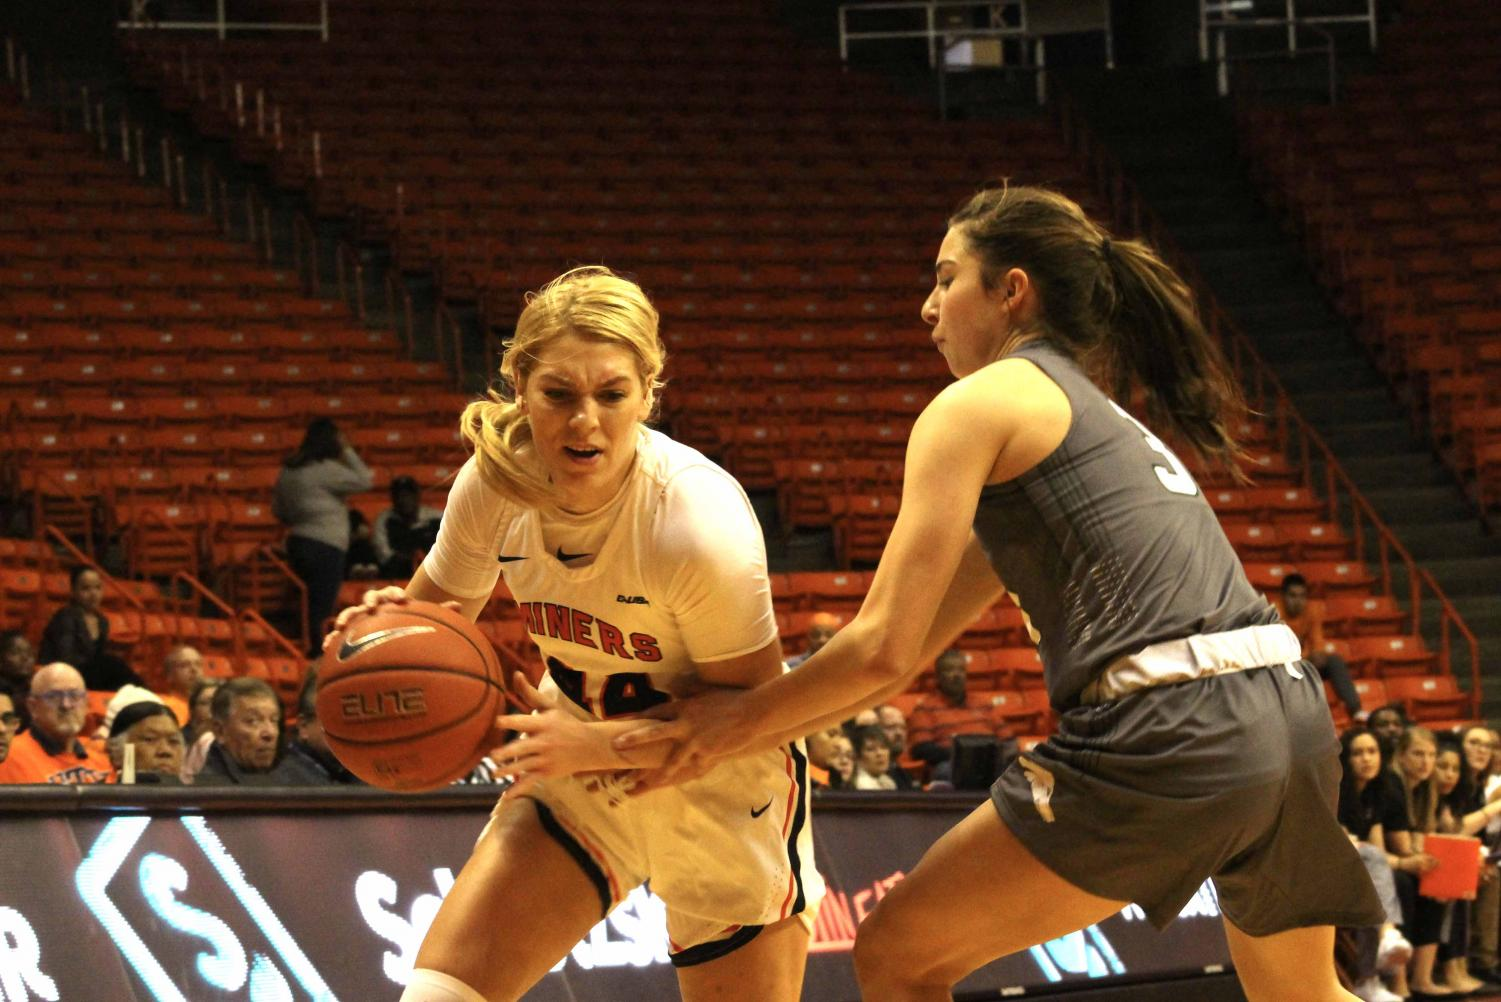 Senior Katarina Zec plays against Western New Mexico University at  the Don Haskins Center on Oct. 26, 2019.